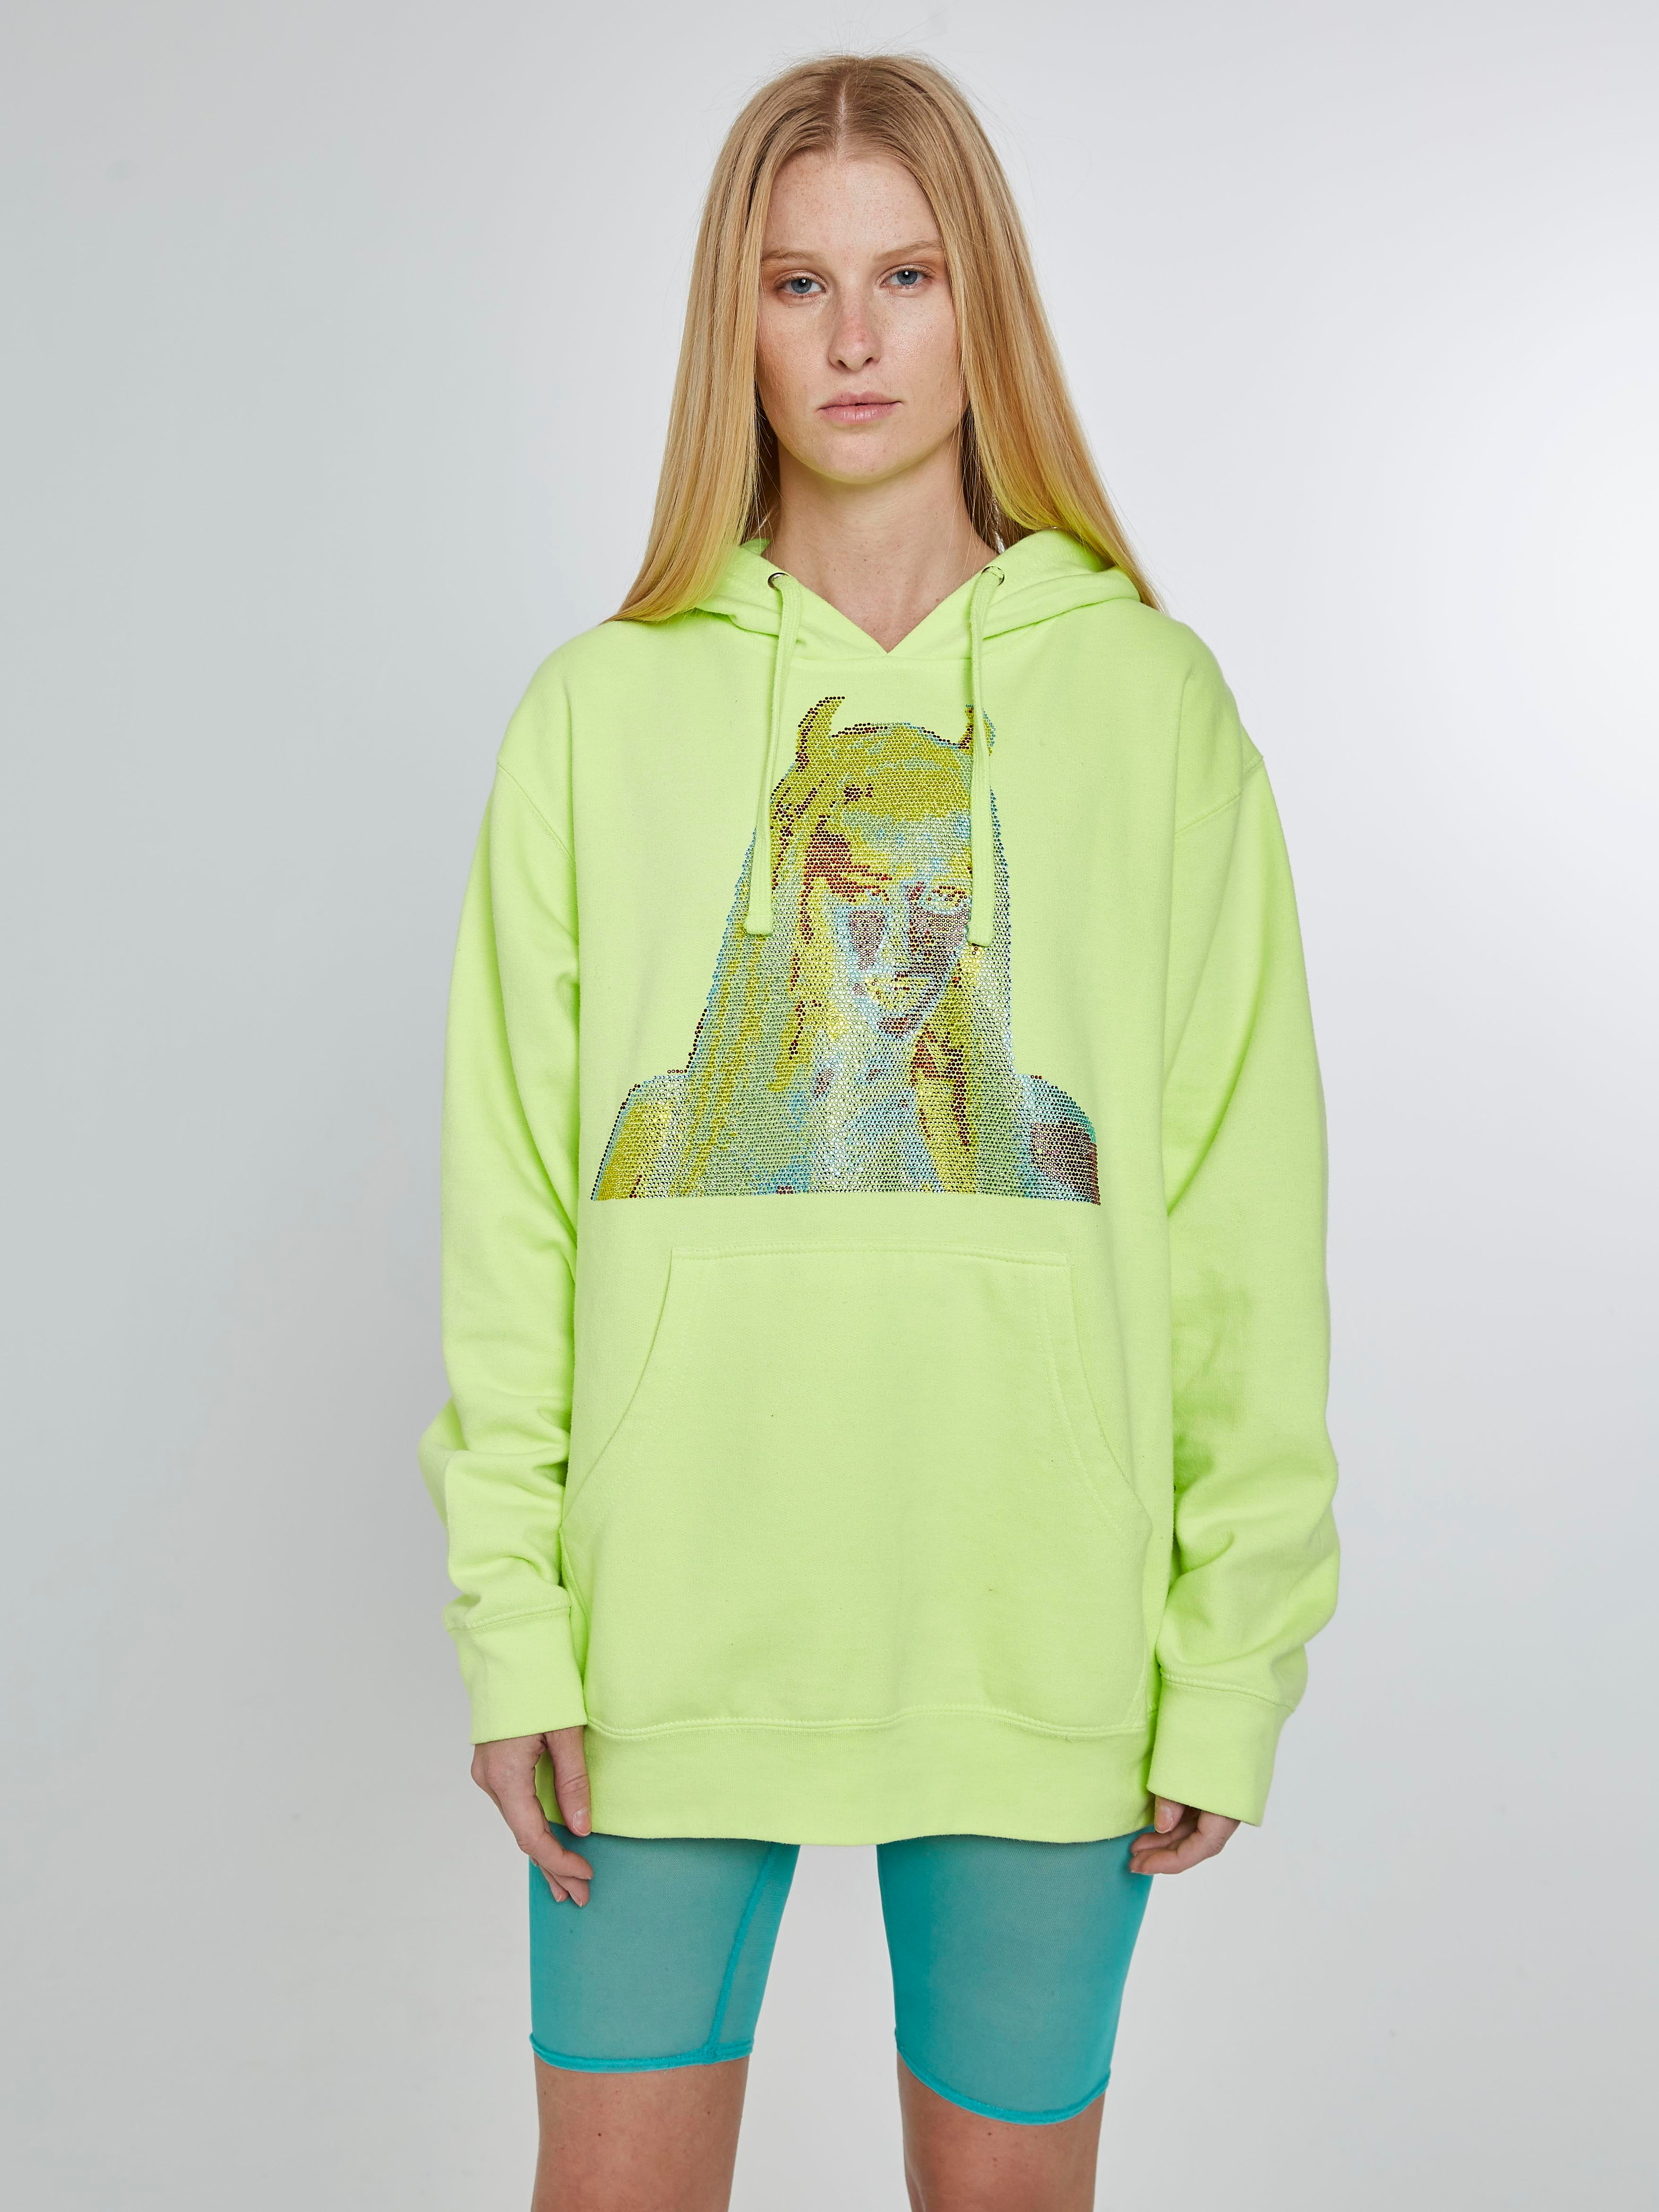 Devil girl neon yellow hoodie with crystals